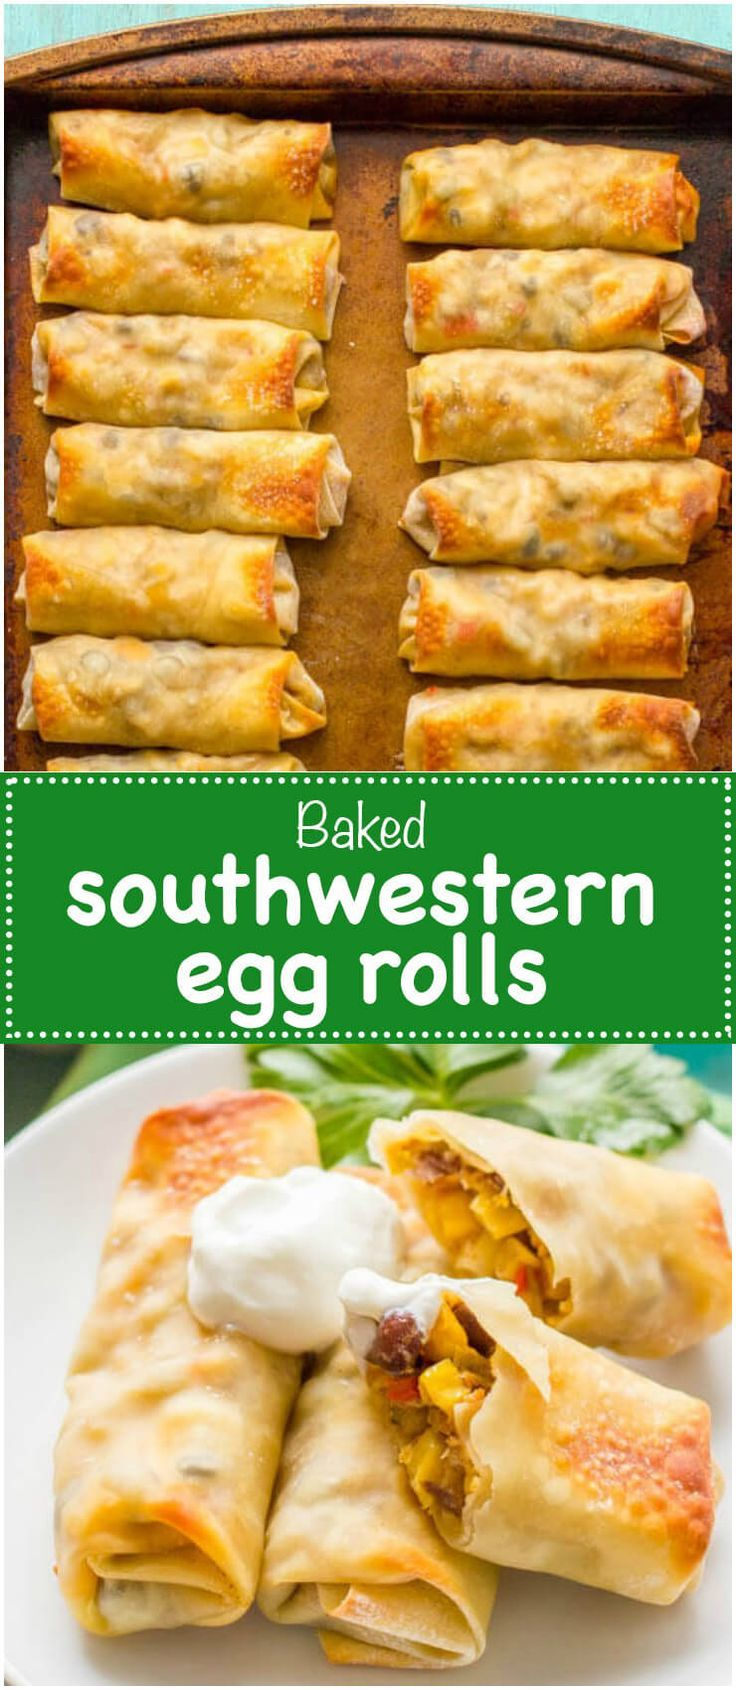 Baked southwestern egg rolls with chicken, black beans and cheese make a perfect game day or party appetizer - these are always a hit! | http://www.familyfoodonthetable.com